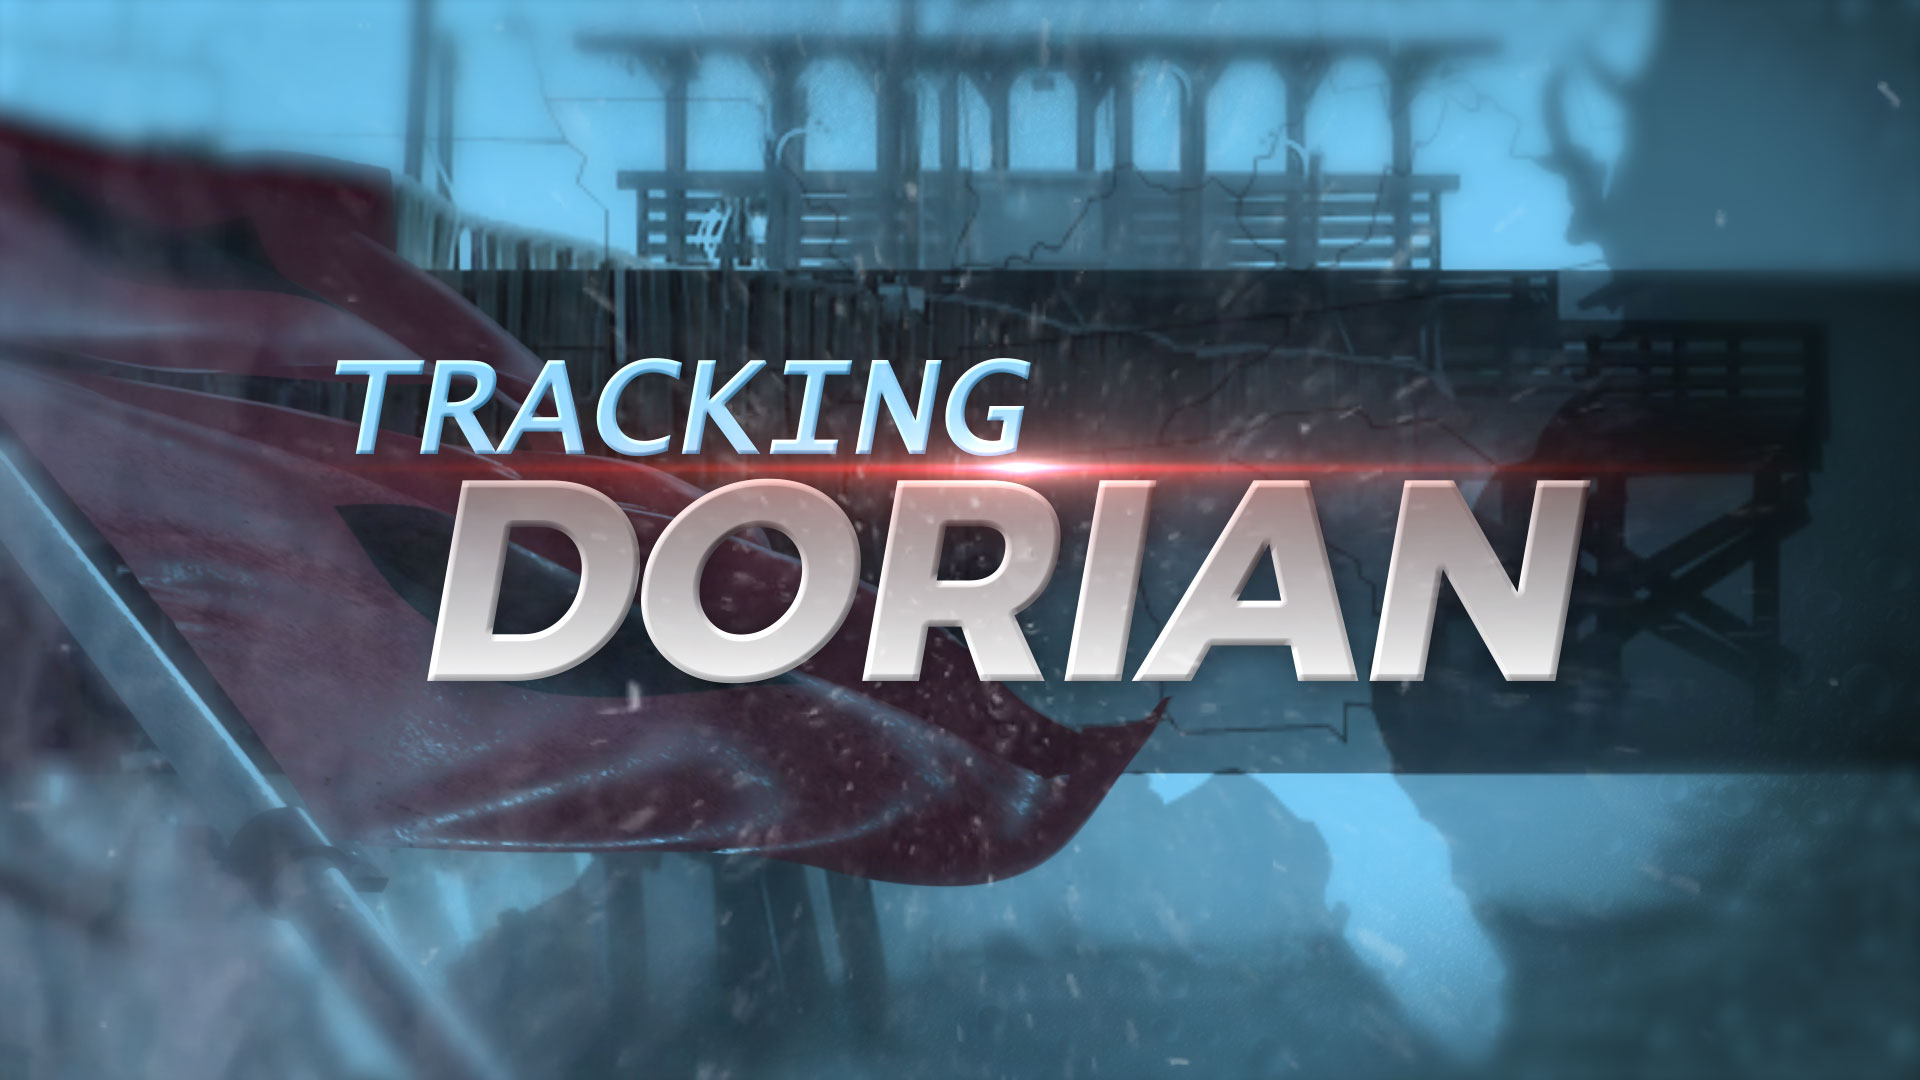 Watch Live Dorian Updates: Tracking the Tropics | WRBL